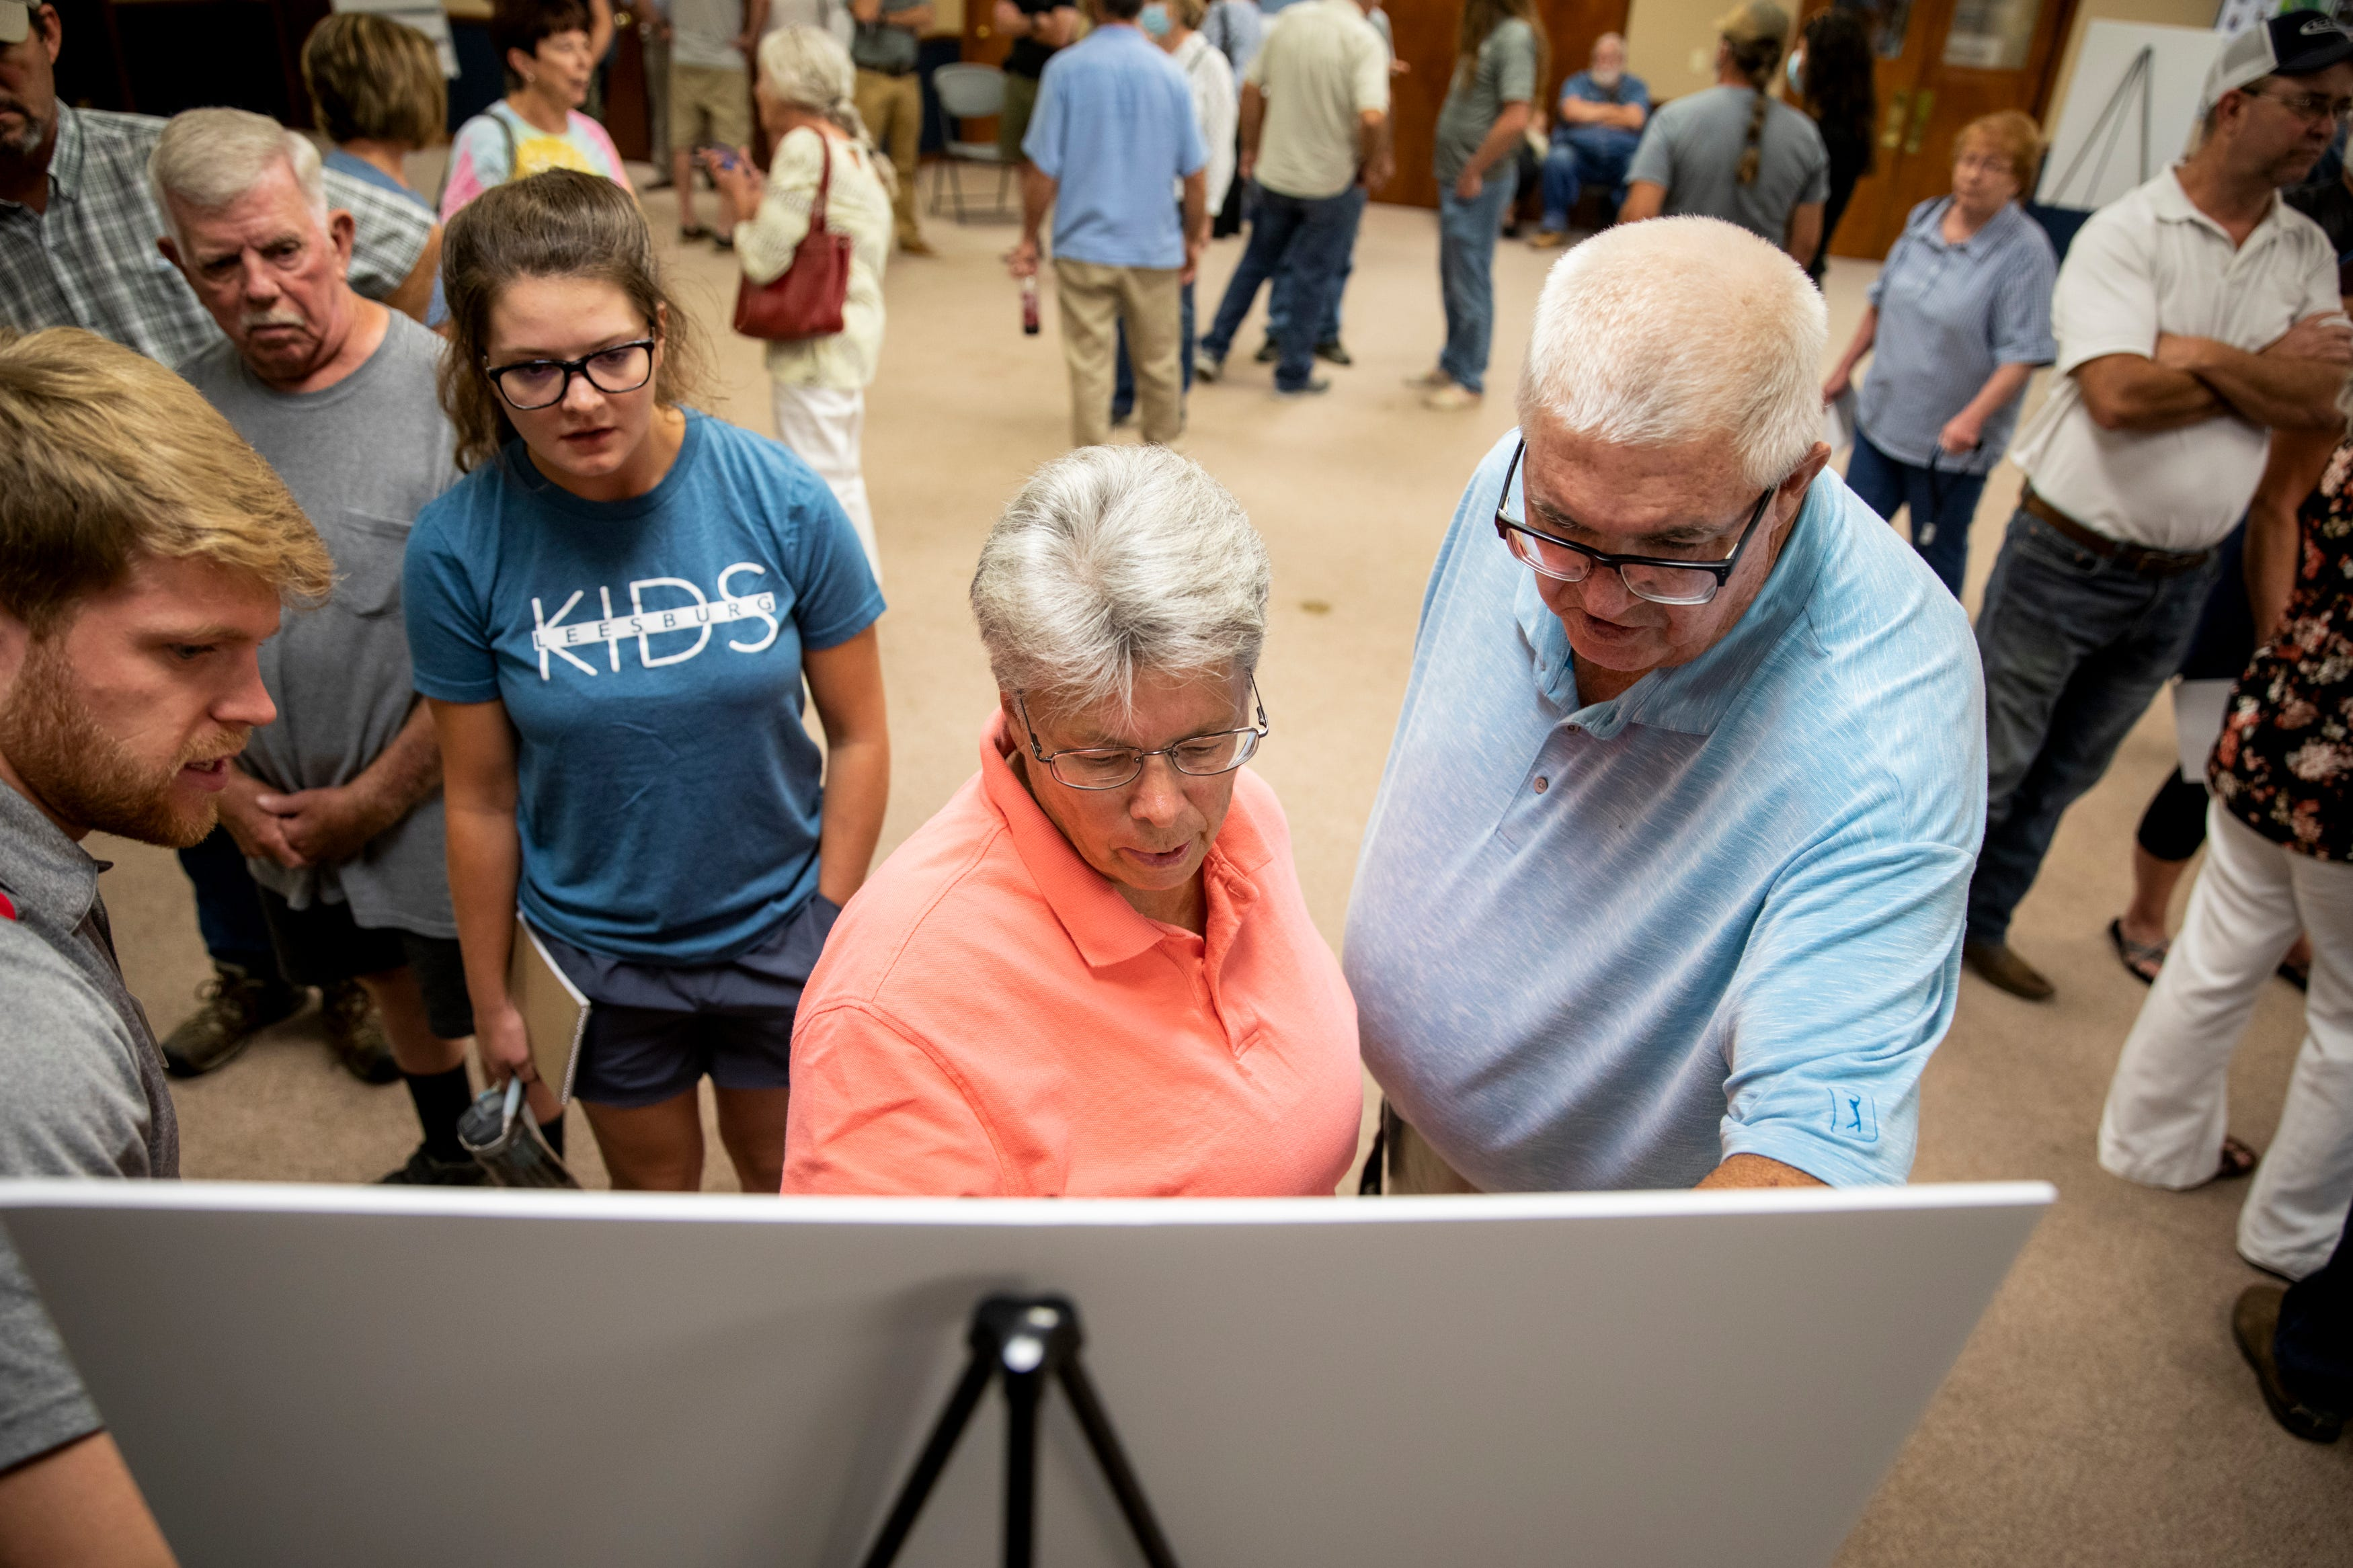 Pam McCauley shows reporter Lee Kendall of The Cynthiana Democrat where her farm is on a map in Cynthiana, Ky., on Wednesday, August 25, 2021.